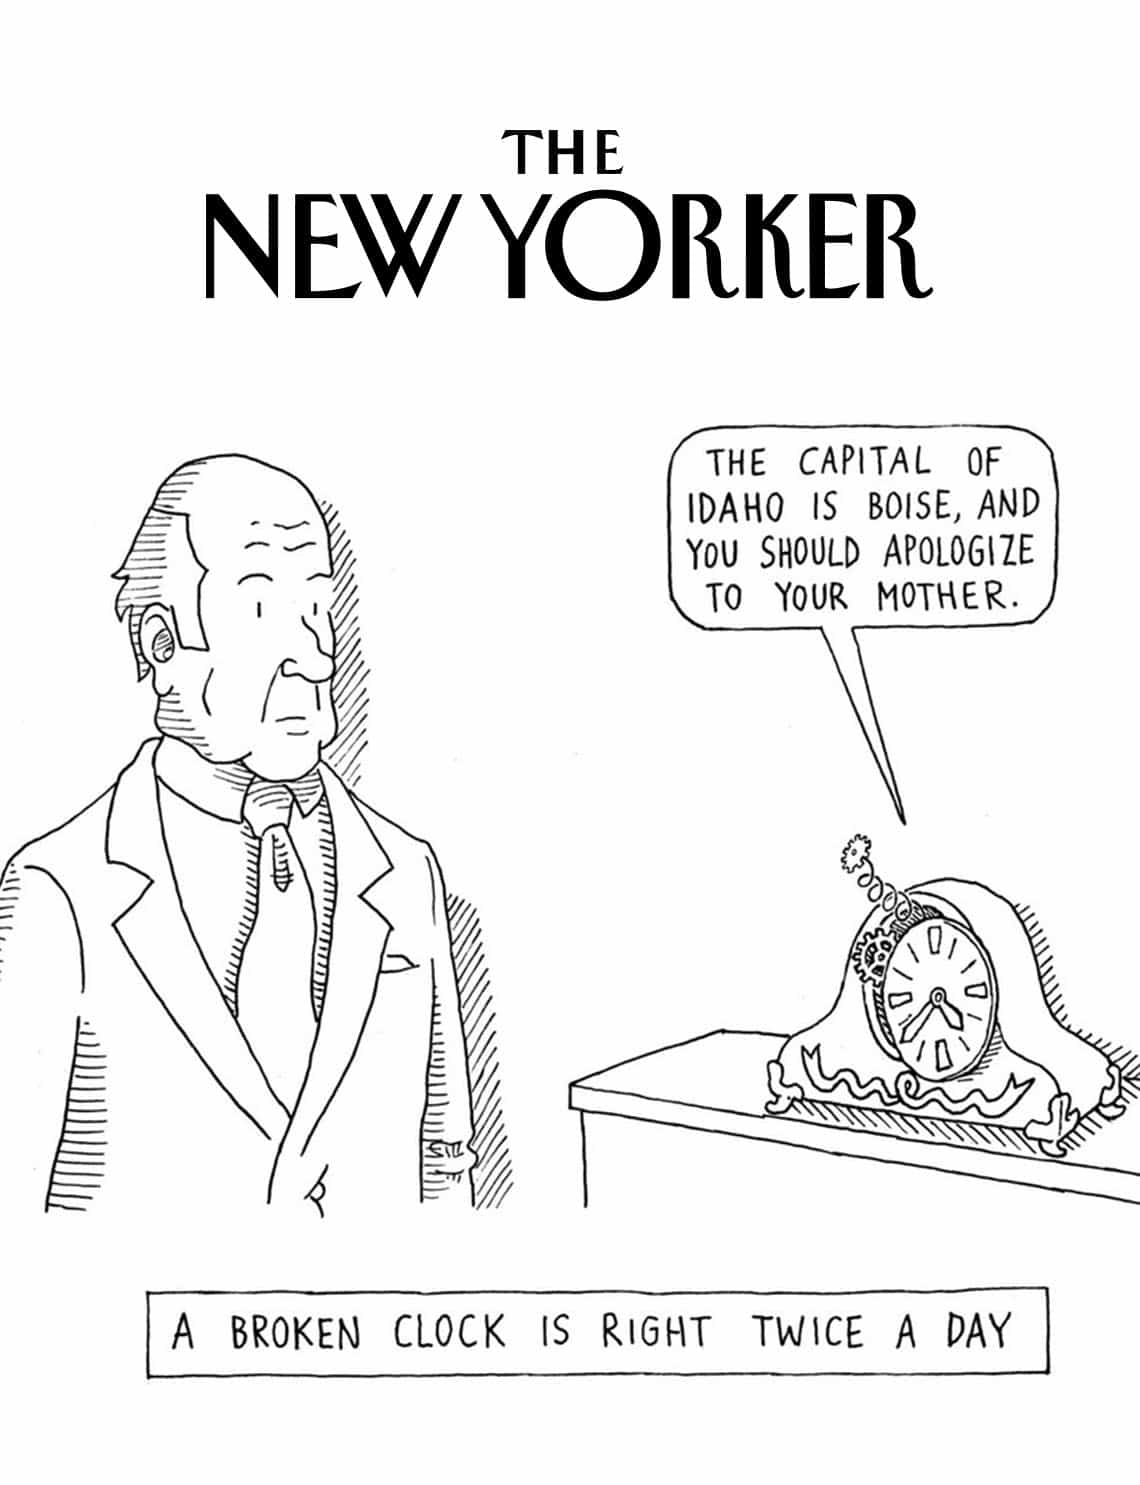 Advertise locally in The New Yorker in more than 100 markets across the U.S.